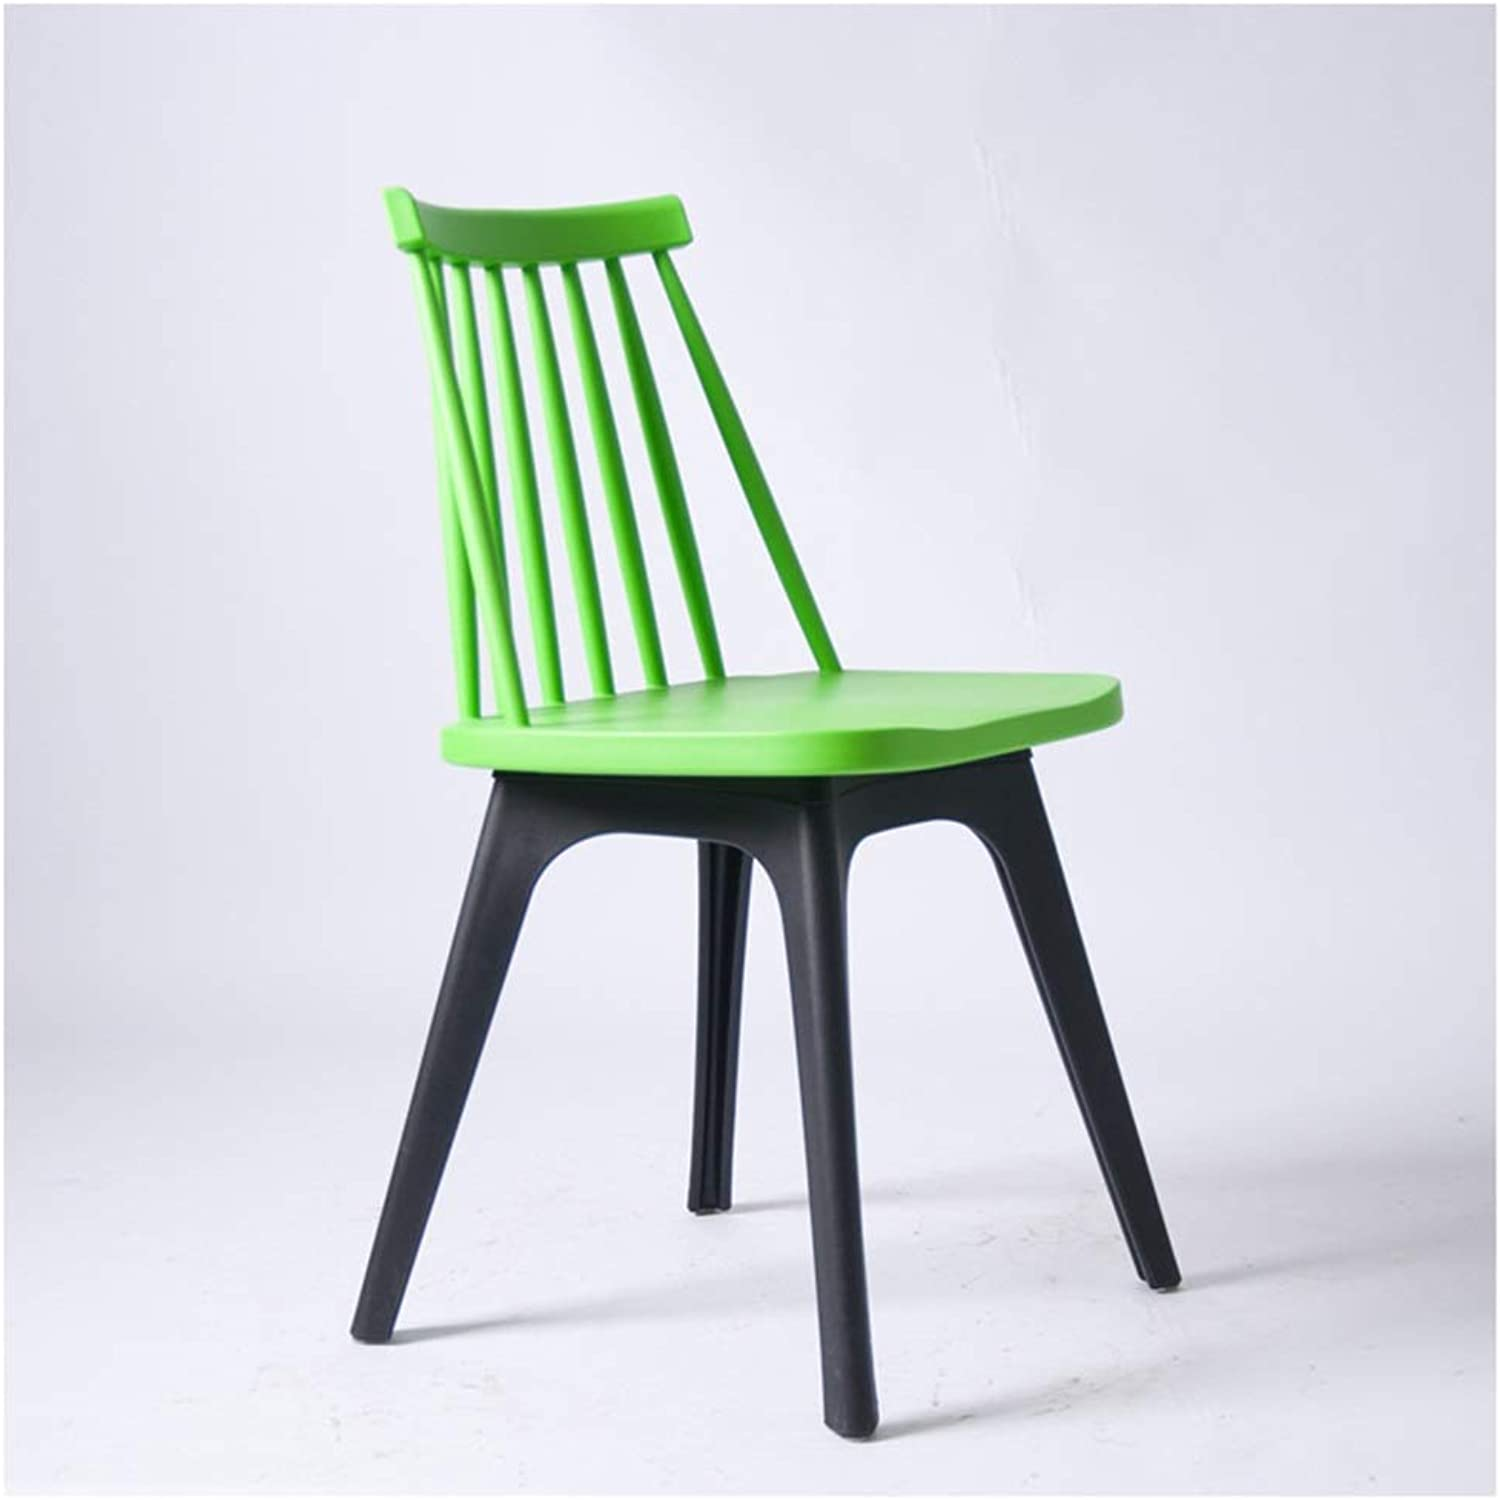 Home Bar Stool Chair Plastic Bar Stool Disassembly PP Injection Living Room Furniture Outdoor Leisure Waiting Chair Home Bar Furniture (color   Green)